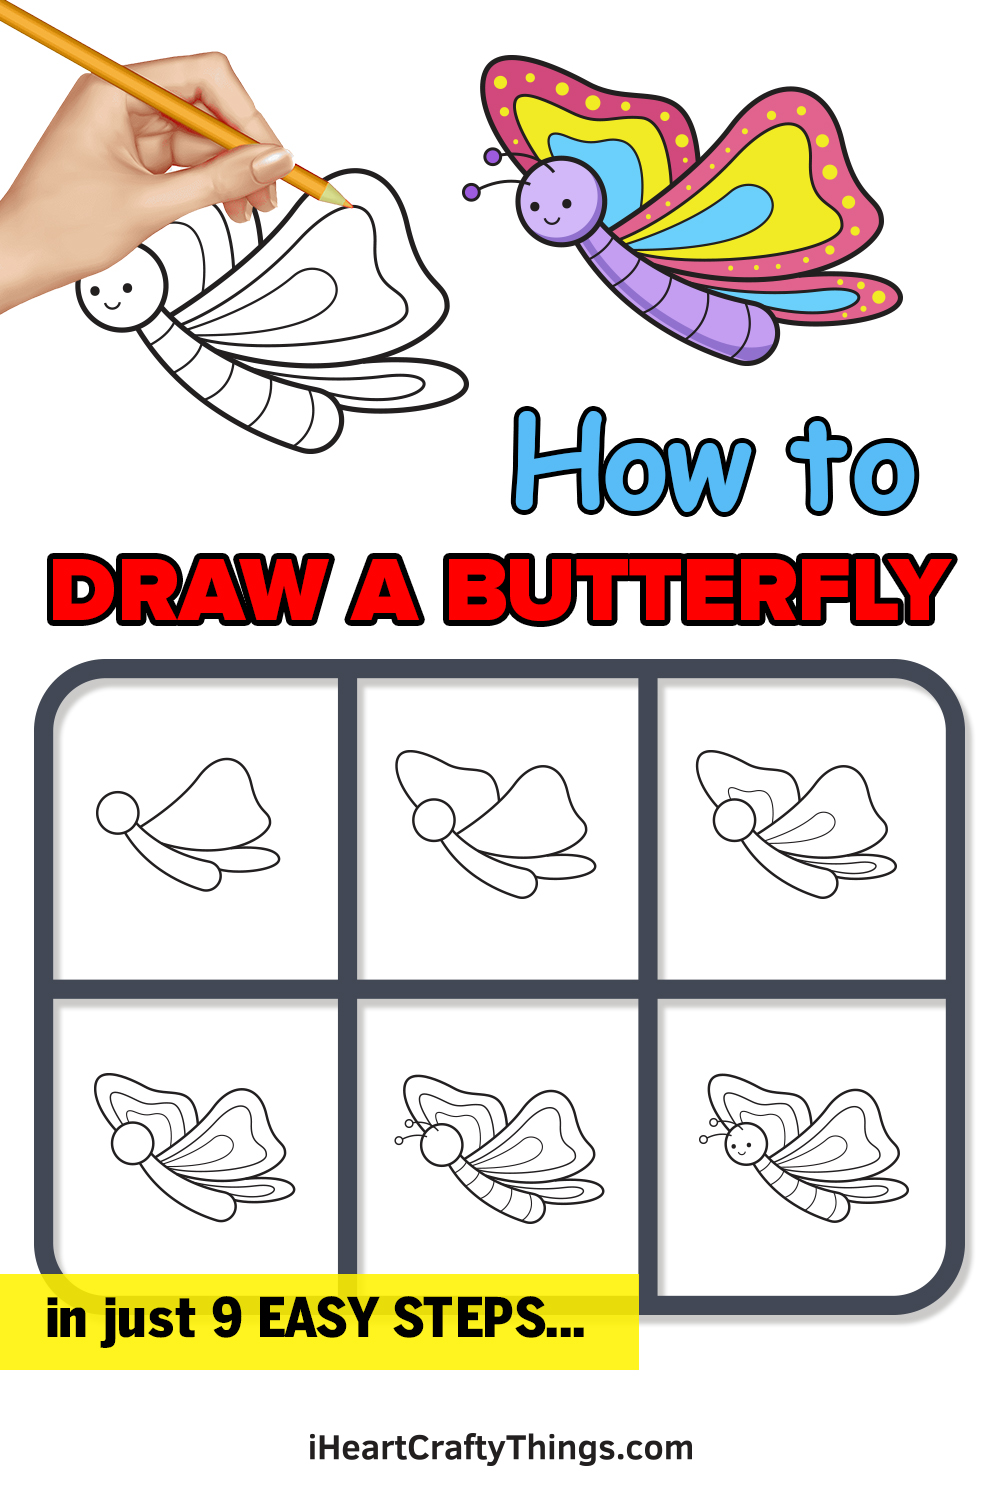 how to draw a butterfly in 9 easy steps